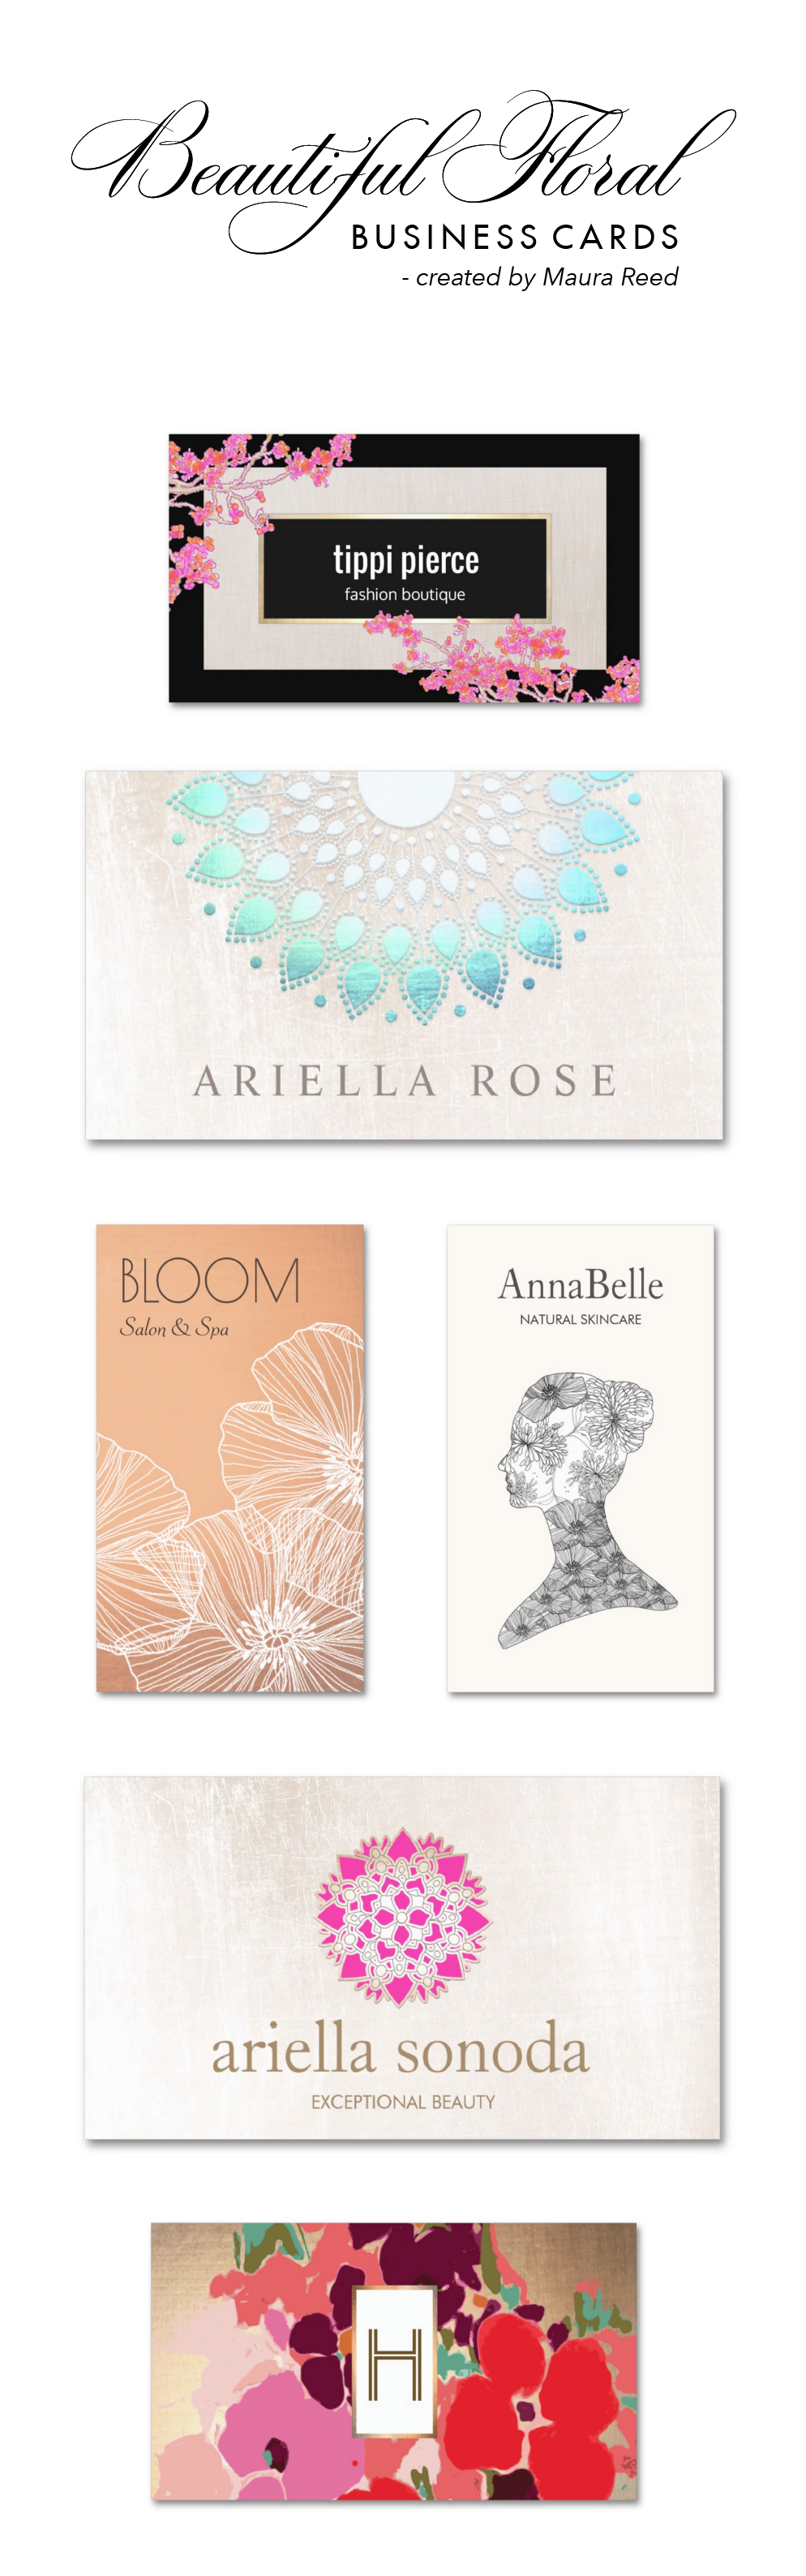 Elegant Floral business card designs perfect for florists, makeup ...